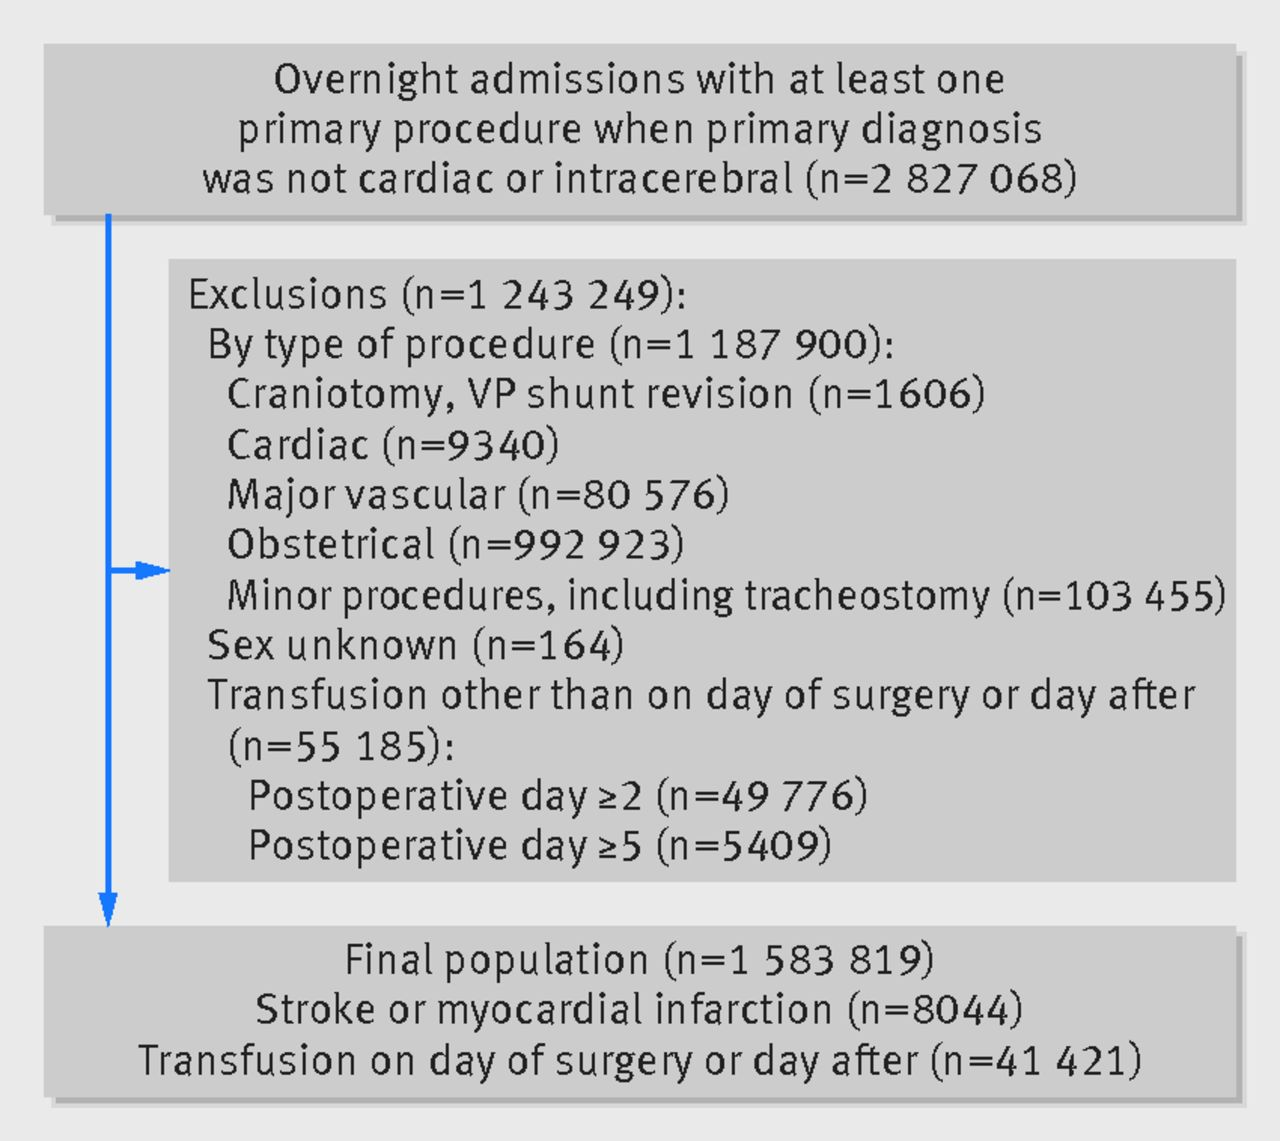 Harms associated with single unit perioperative transfusion